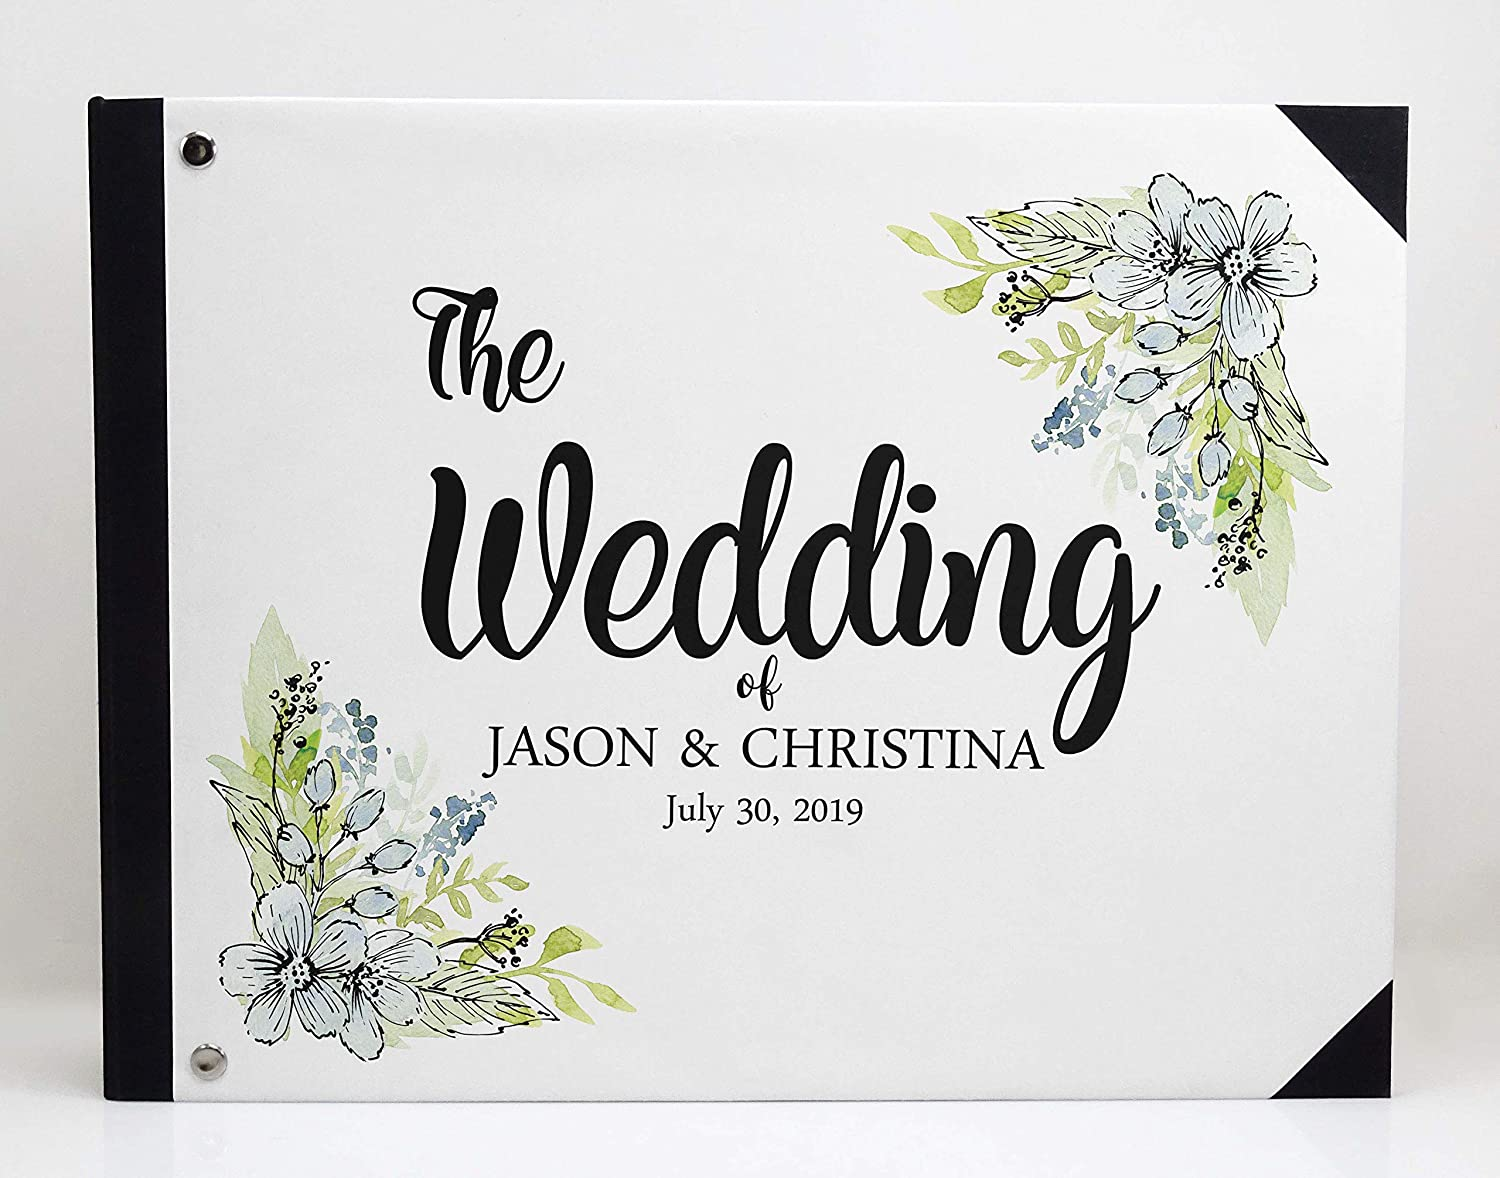 Darling Souvenir Multicolor Leaves Wedding Guest Book Hardbound Guest Sign-in Book Guest Registry Guestbook-9 x 12 Inches